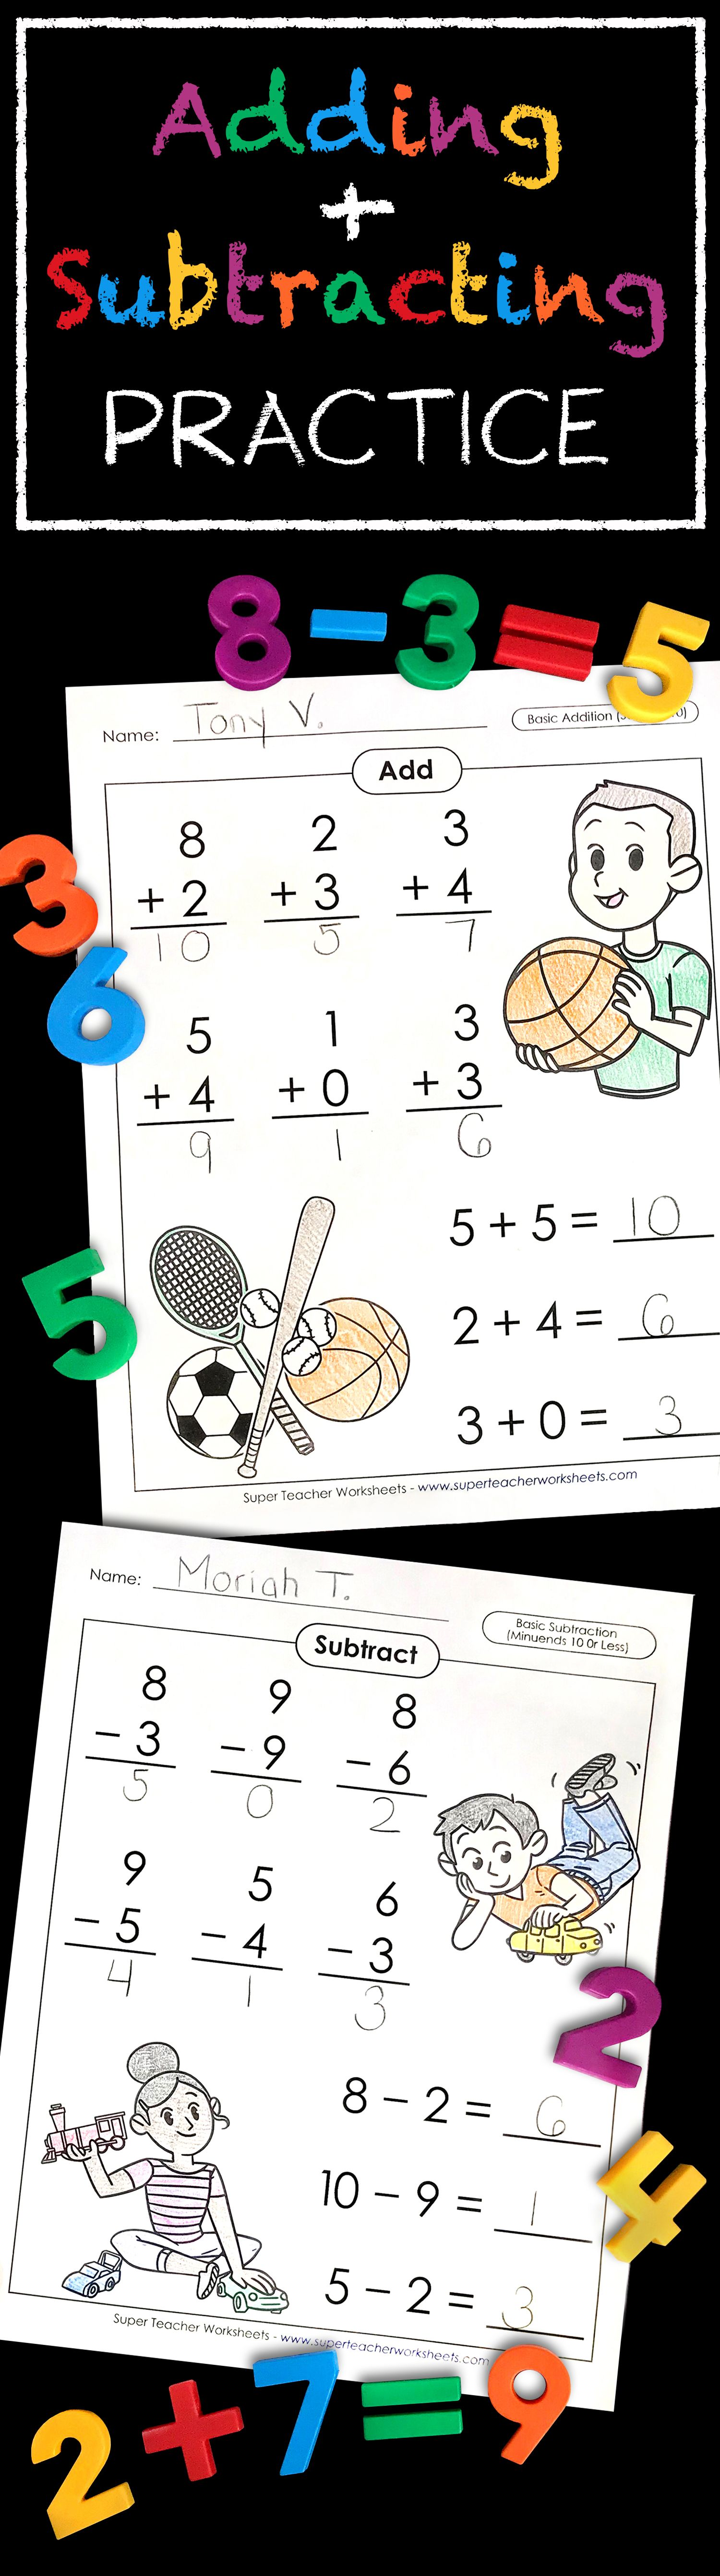 Practice Basic Addition And Subtraction With These Fun